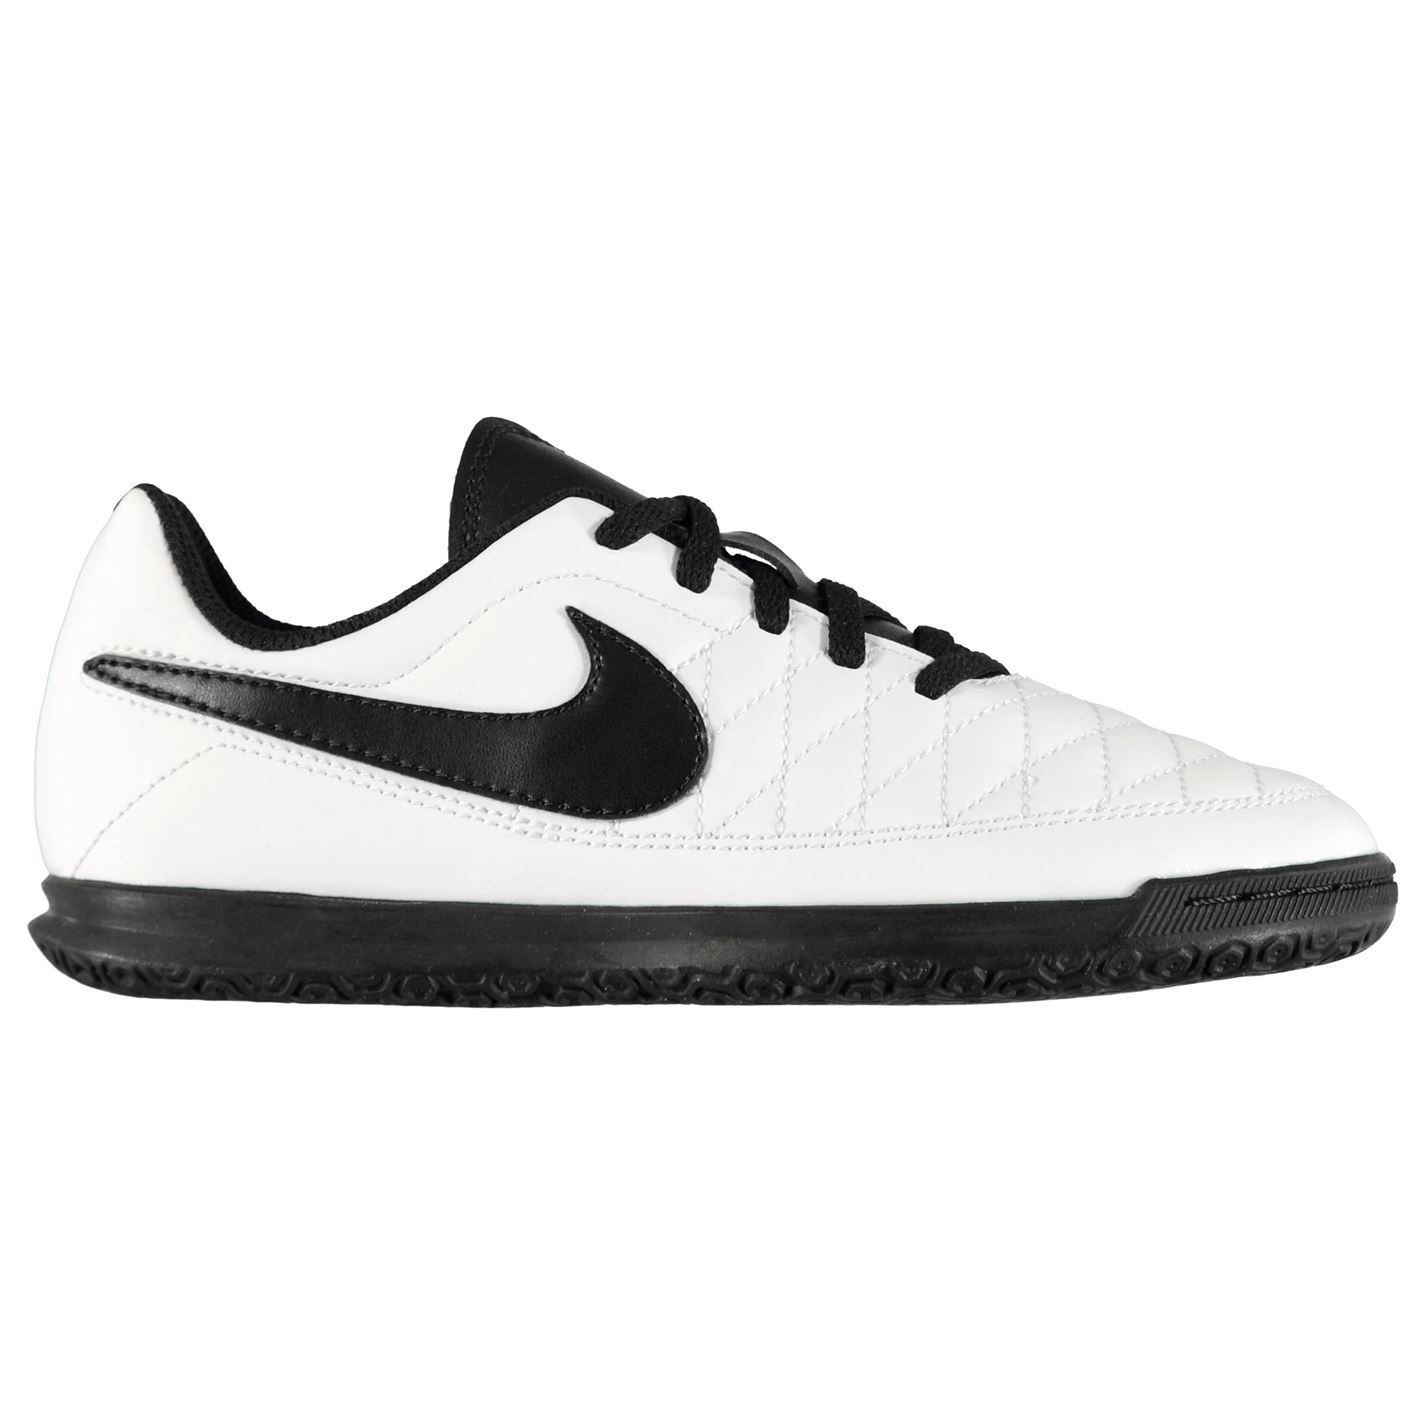 Nike-majestry-Indoor-Court-Football-formateurs-juniors-Football-Baskets-Chaussures miniature 11